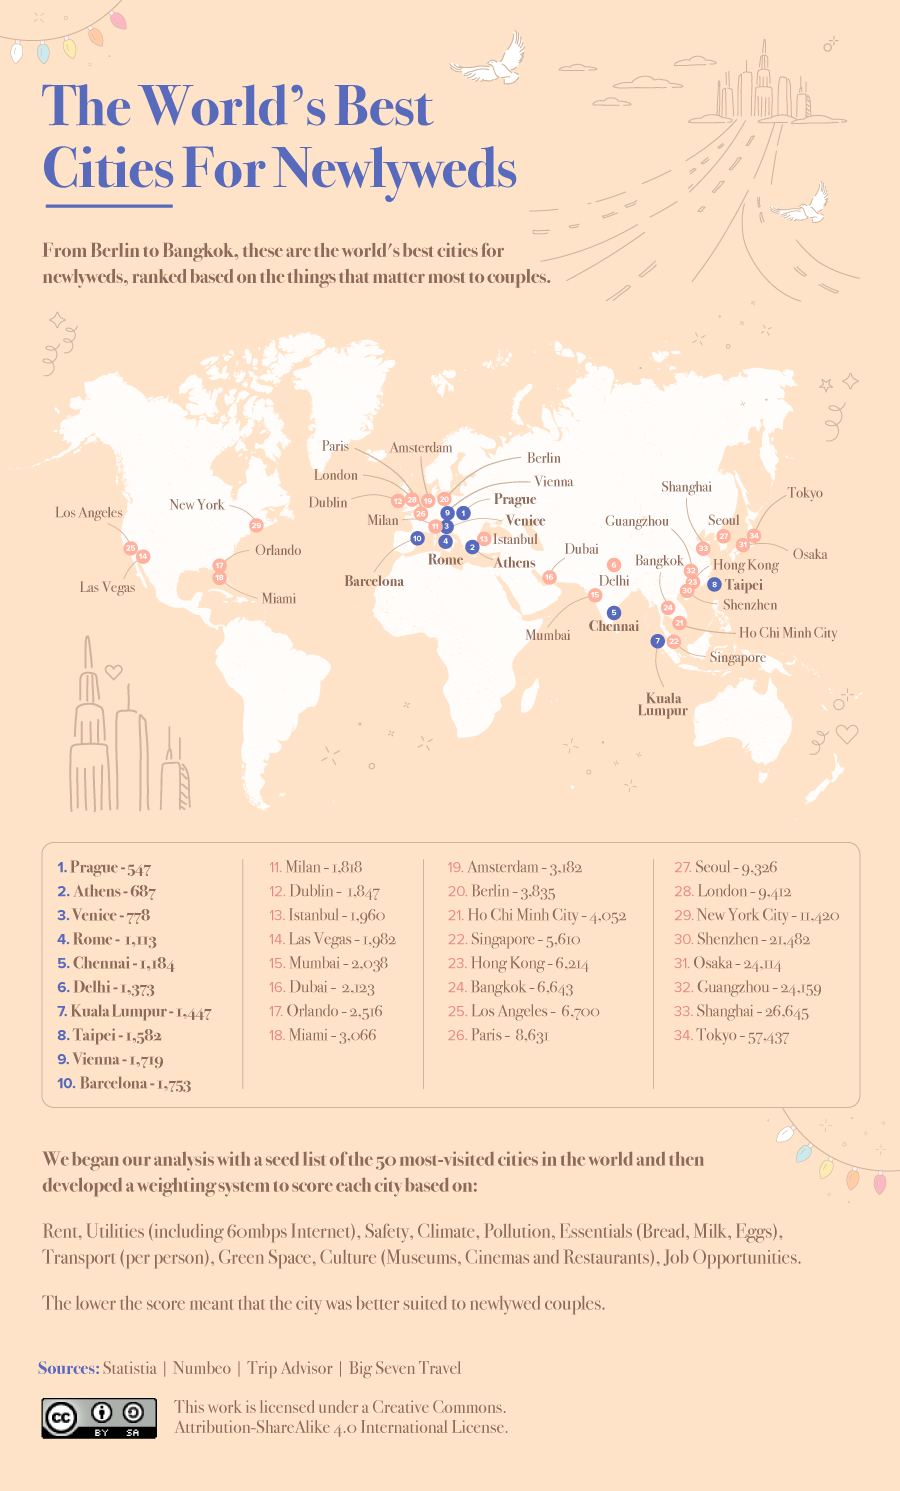 Ranking the World's Best Cities for Newlyweds in 2021